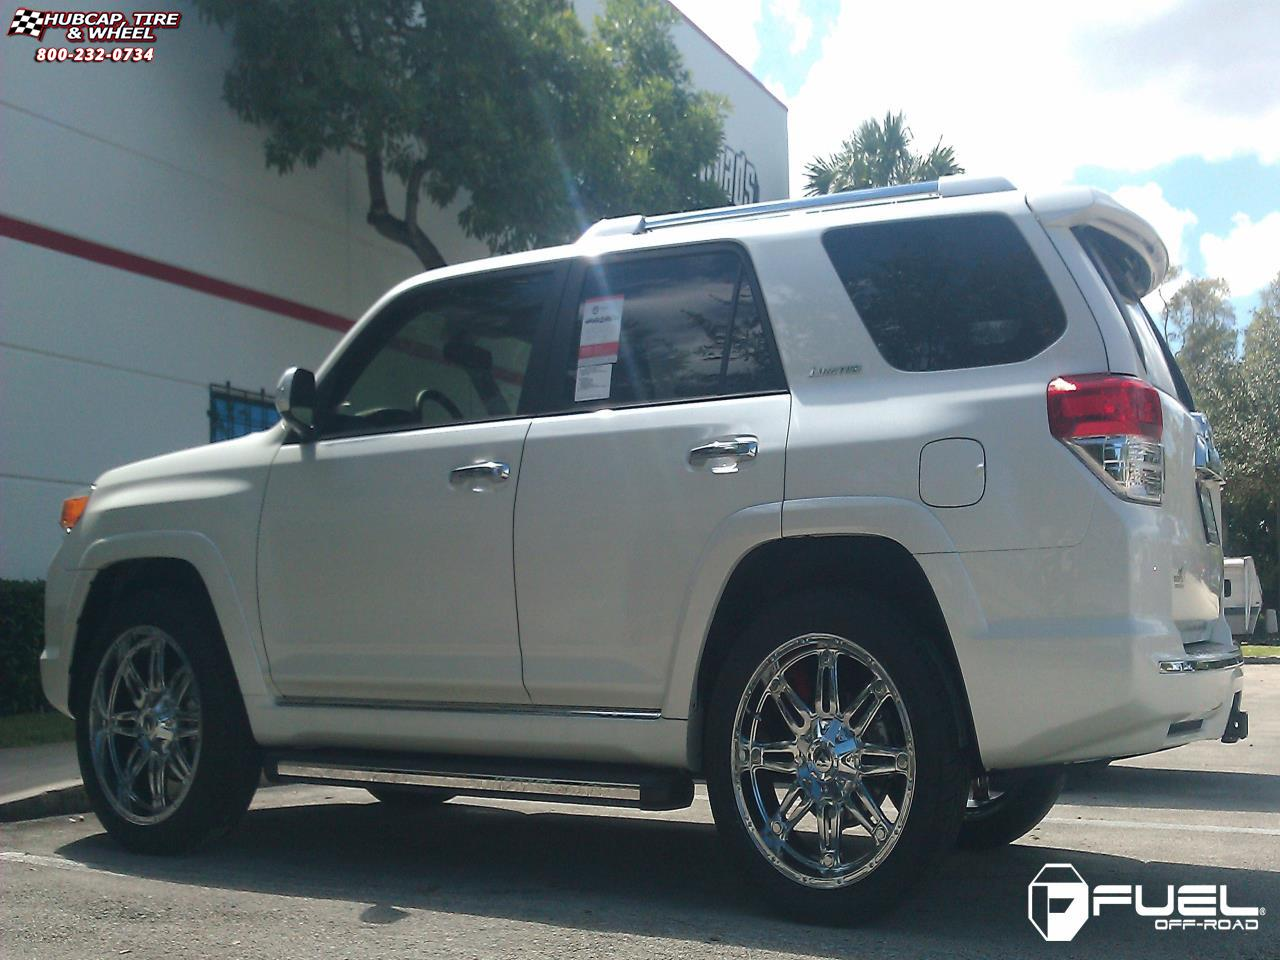 hight resolution of toyota 4 runner fuel hostage d530 0x0 chrome wheels and rims